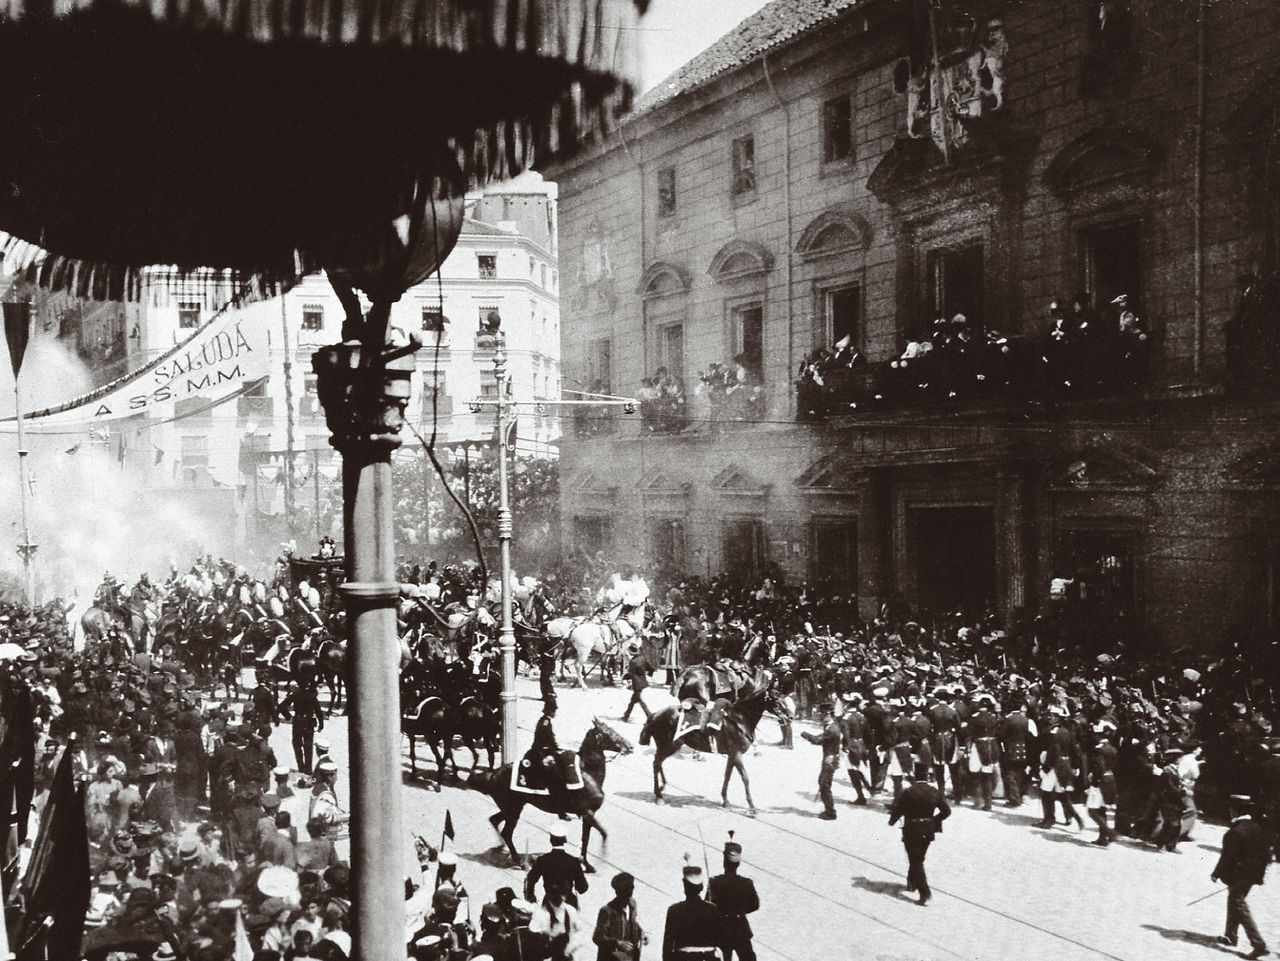 Spain (1906). Attack against Alfonso XIII and Victoria Eugenia on their wedding day. Bomb thrown from a balcony by the Anarchist Mateu Morral against the nuptial procession in the street Mayor of Madrid when they were going to the Royal Palace from San Je. Photography.